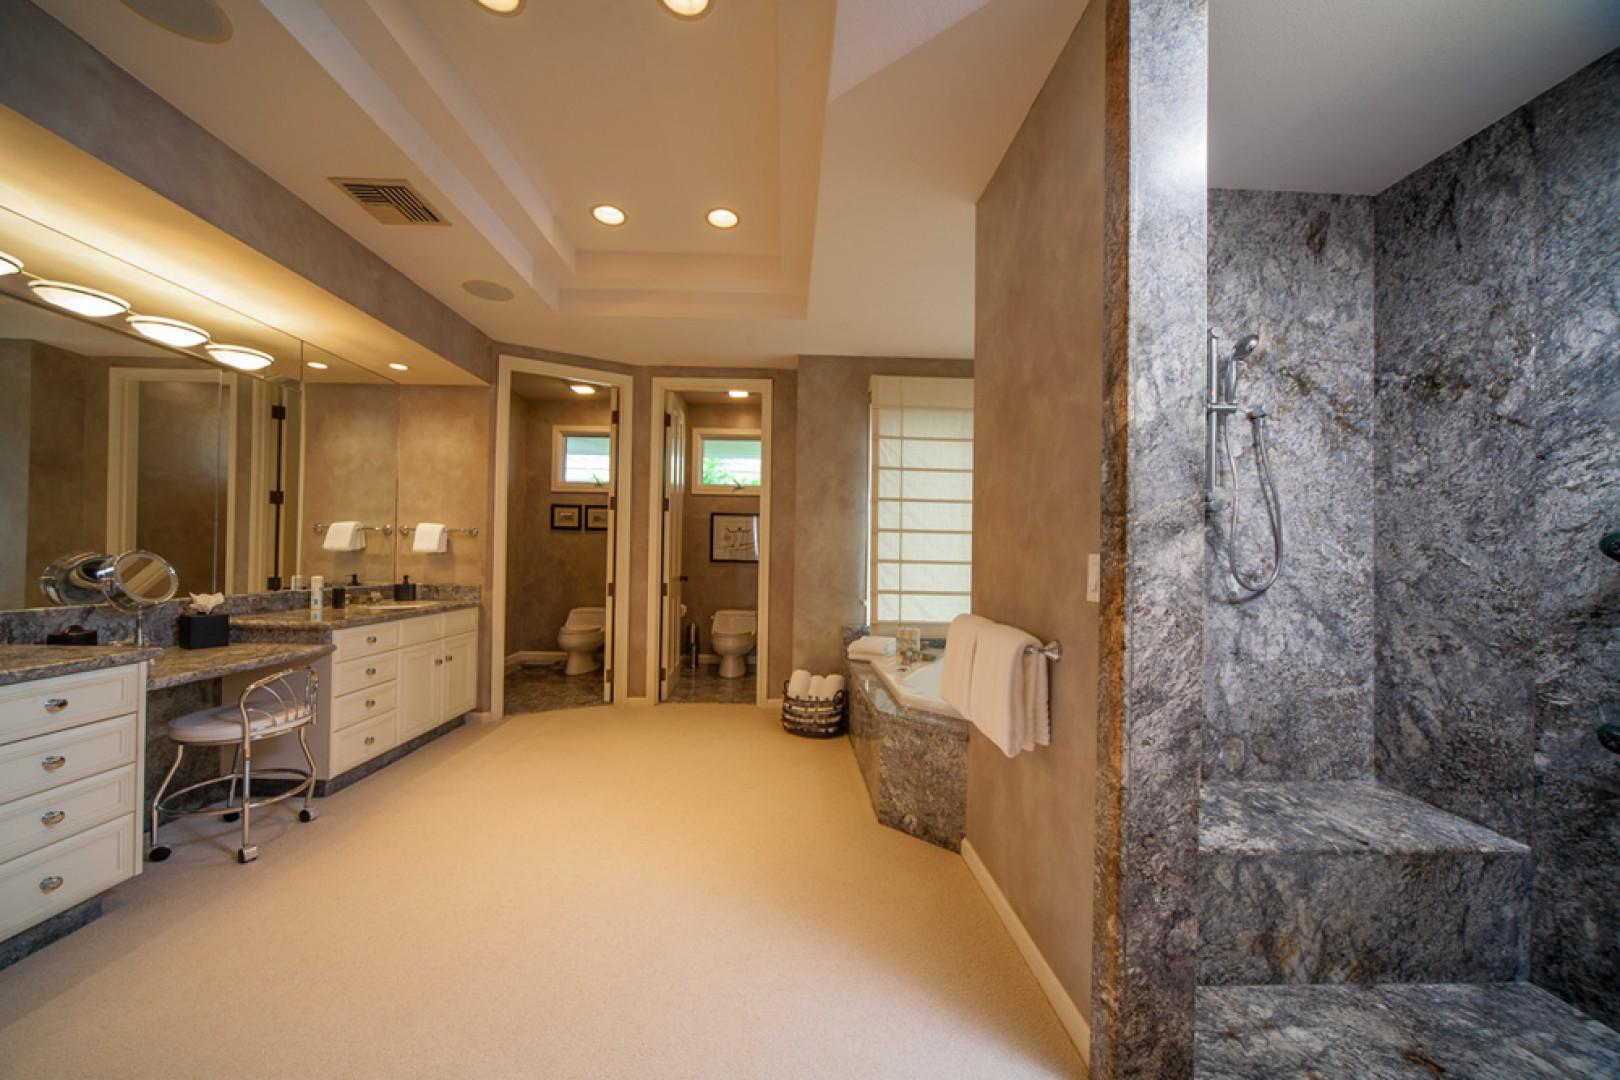 Opal Seas At Baby Beach - Master Bedroom En-suite Bath with Two Private WC, A Double Glassed-In Shower with Body Shower Heads, Deep Tub, Dual Vanities, Hair Dryers, Scale, Make-Up Mirror, Bathrobes, Abundant Plush Towels and more...